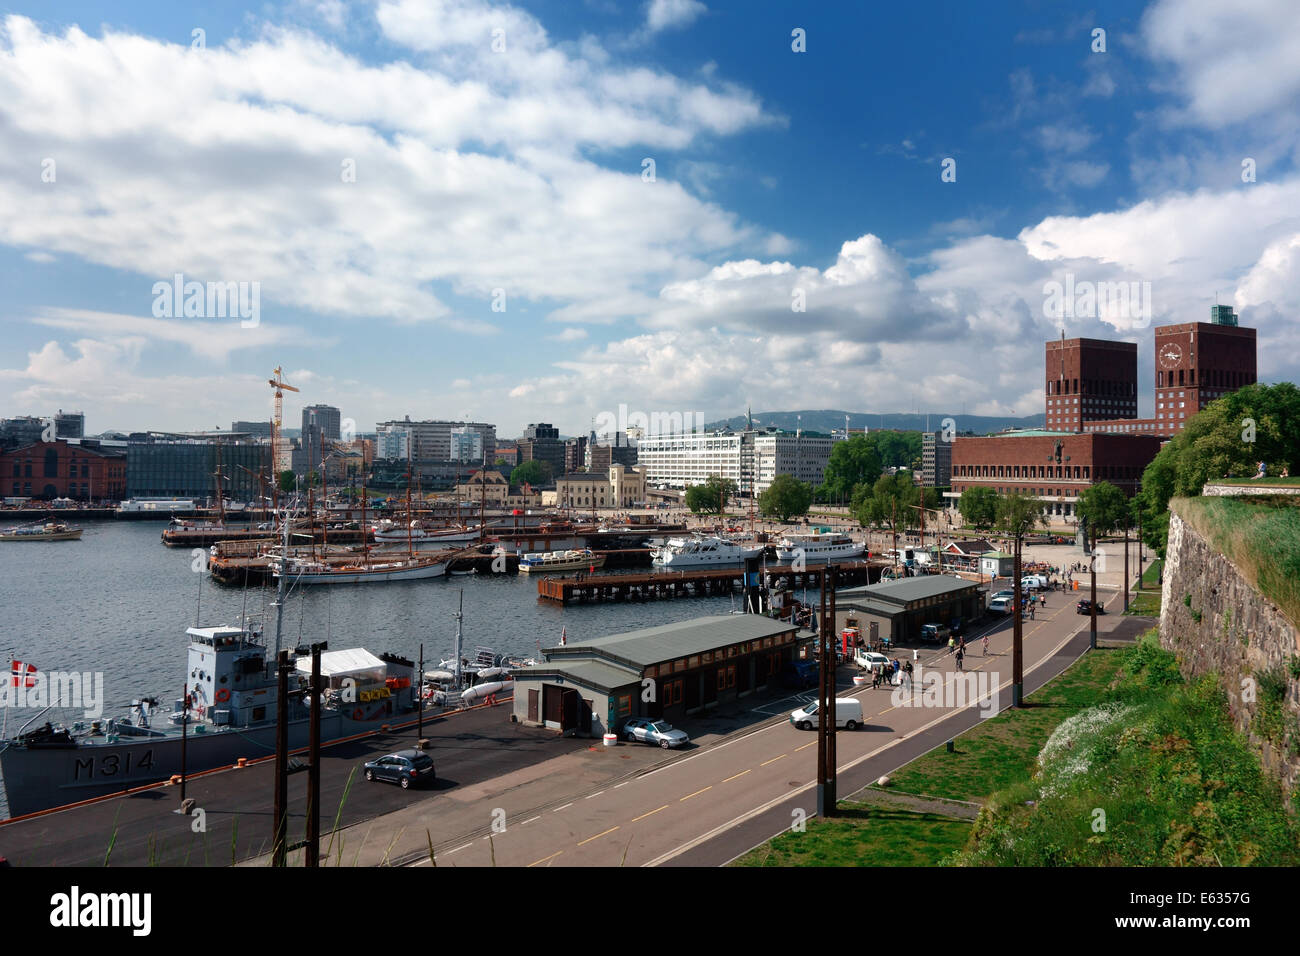 Boats moored on Oslo waterfront - Stock Image